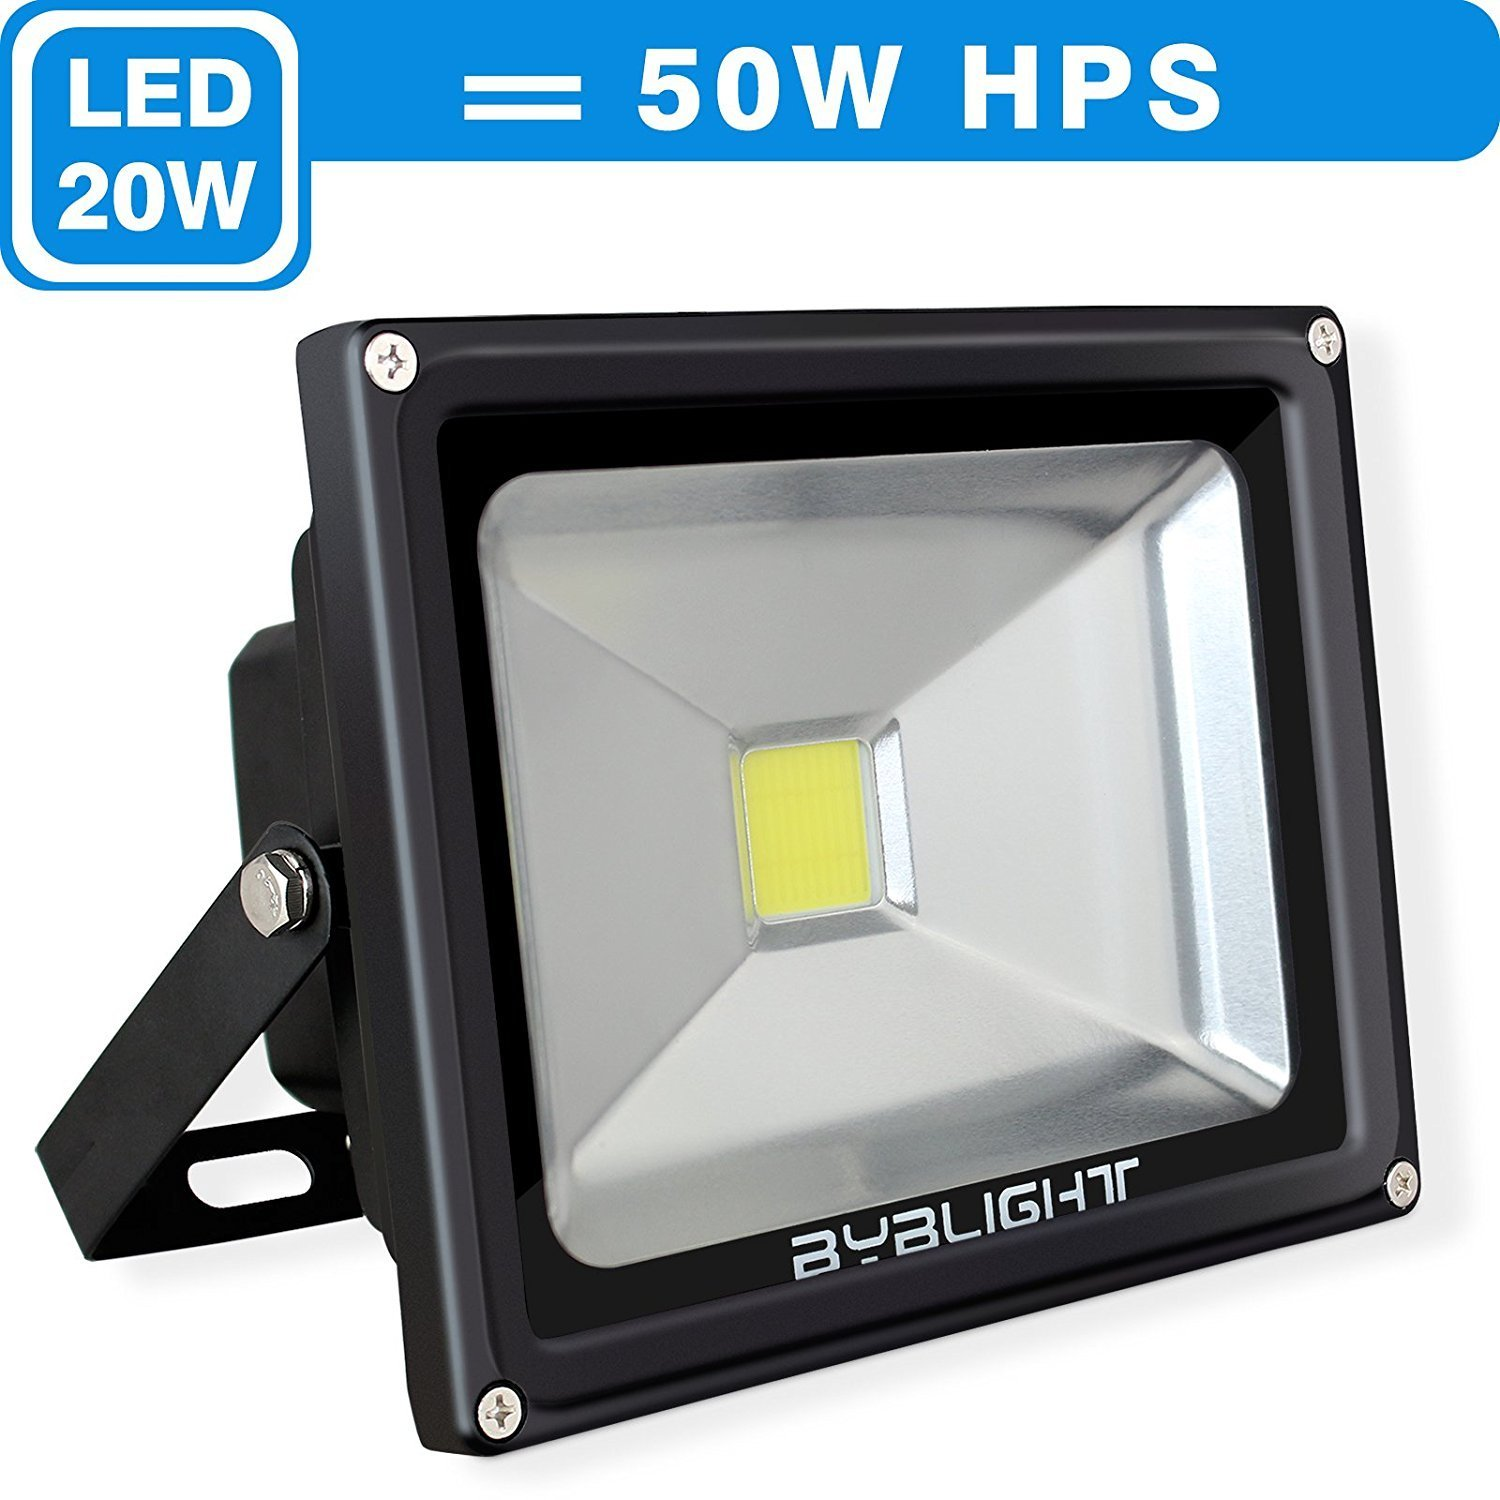 Byb 50 watt super bright outdoor led flood light 150w hps bulb please upgrade to full version of magic zoom plus aloadofball Images